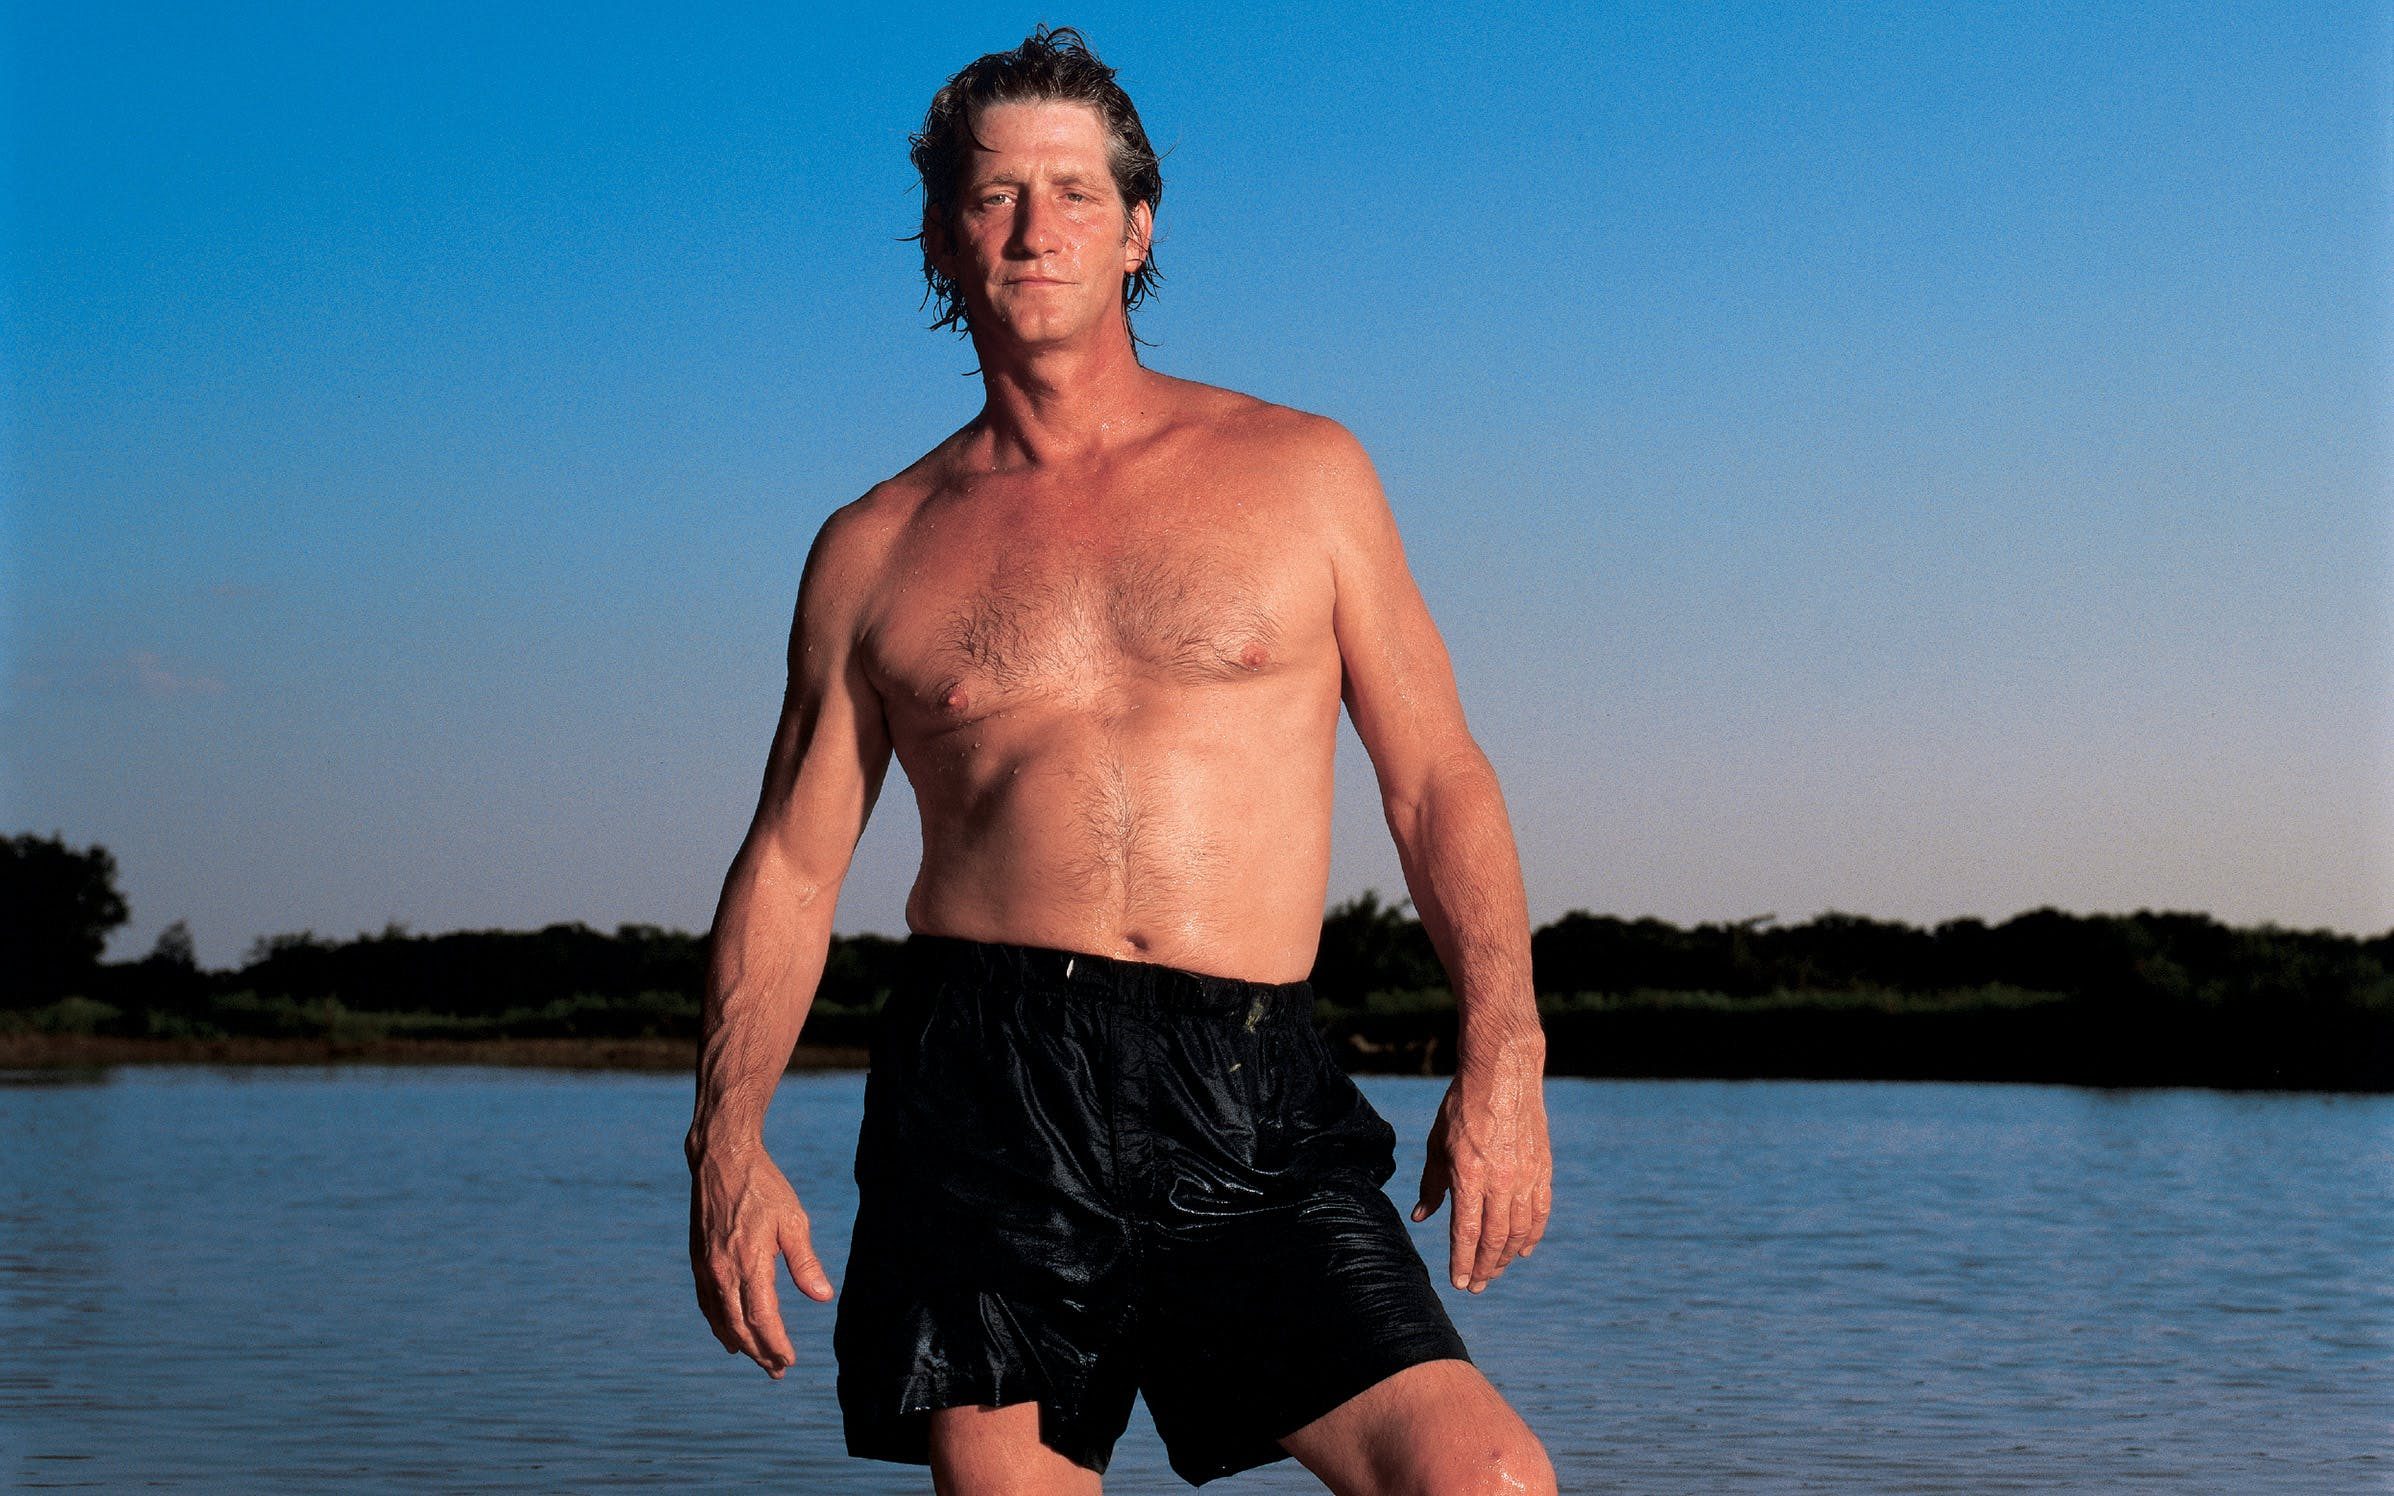 Kevin Von Erich Phone number, Email Id, Fanmail, Instagram, Tiktok, and Contact Details